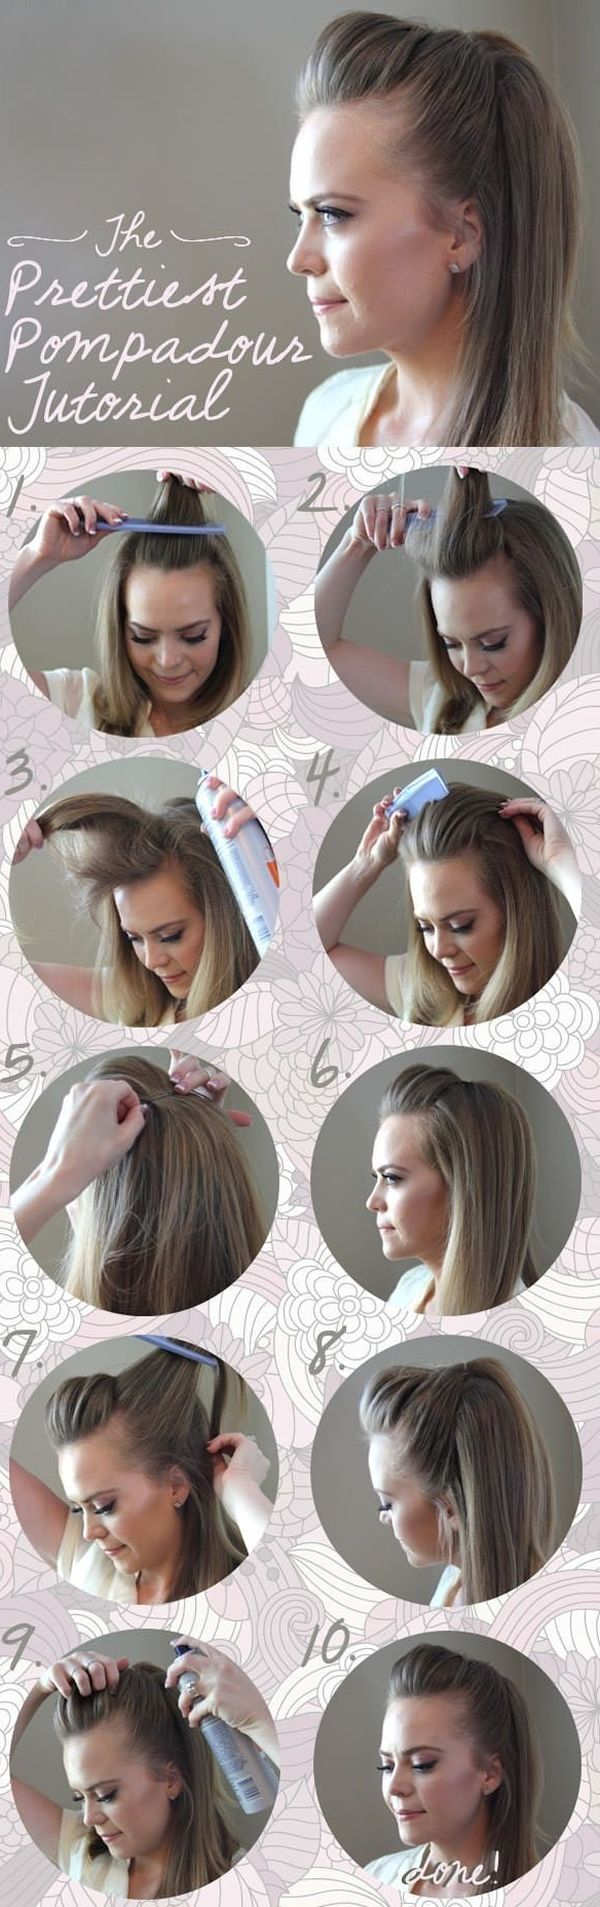 13 Five-Minute Hairstyles For School | stylequick